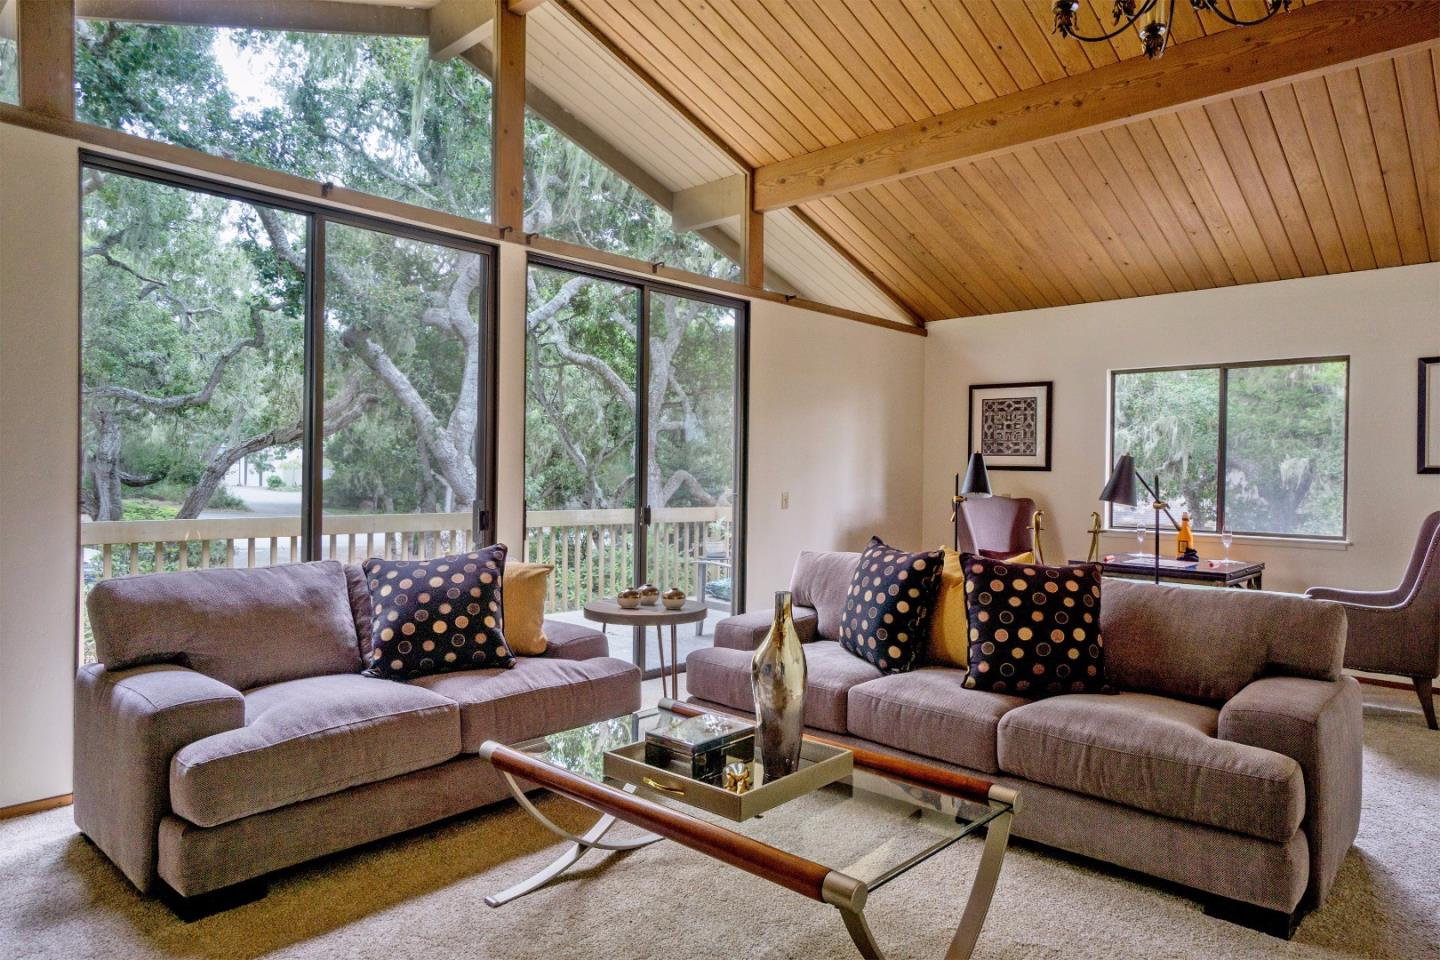 Additional photo for property listing at 2854 Congress Road  Pebble Beach, カリフォルニア 93953 アメリカ合衆国